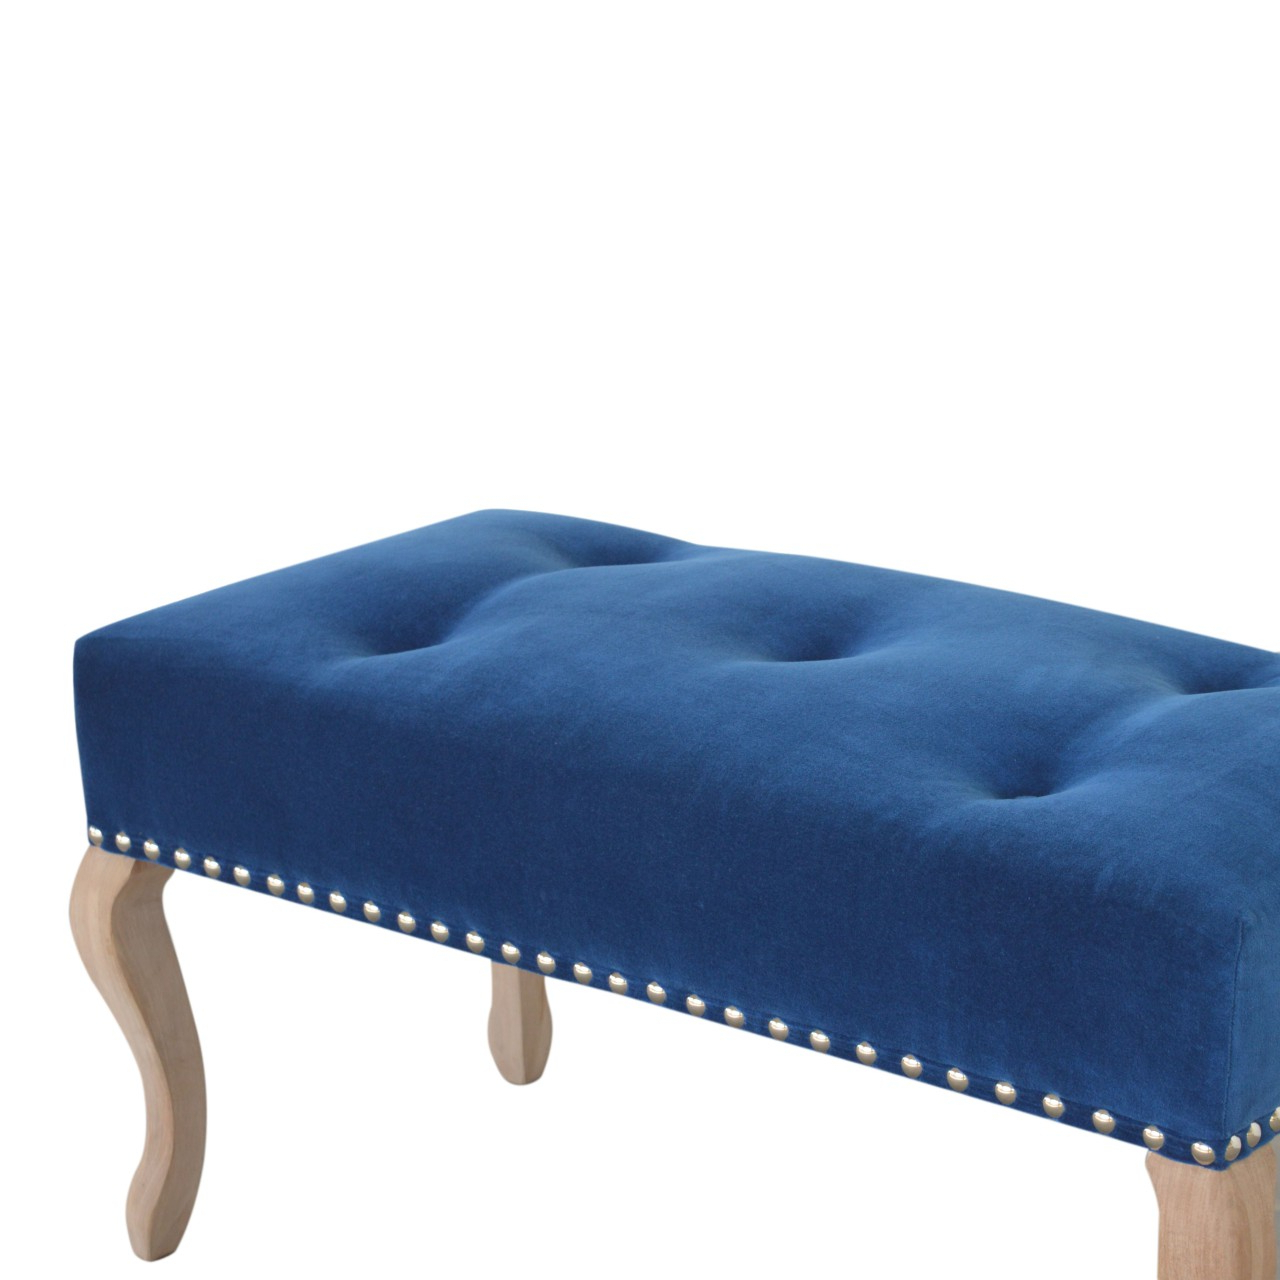 Artisan Blue Sofas Throughout Favorite Wholesale French Style Royal Blue Velvet Bench, Dropship (View 12 of 20)